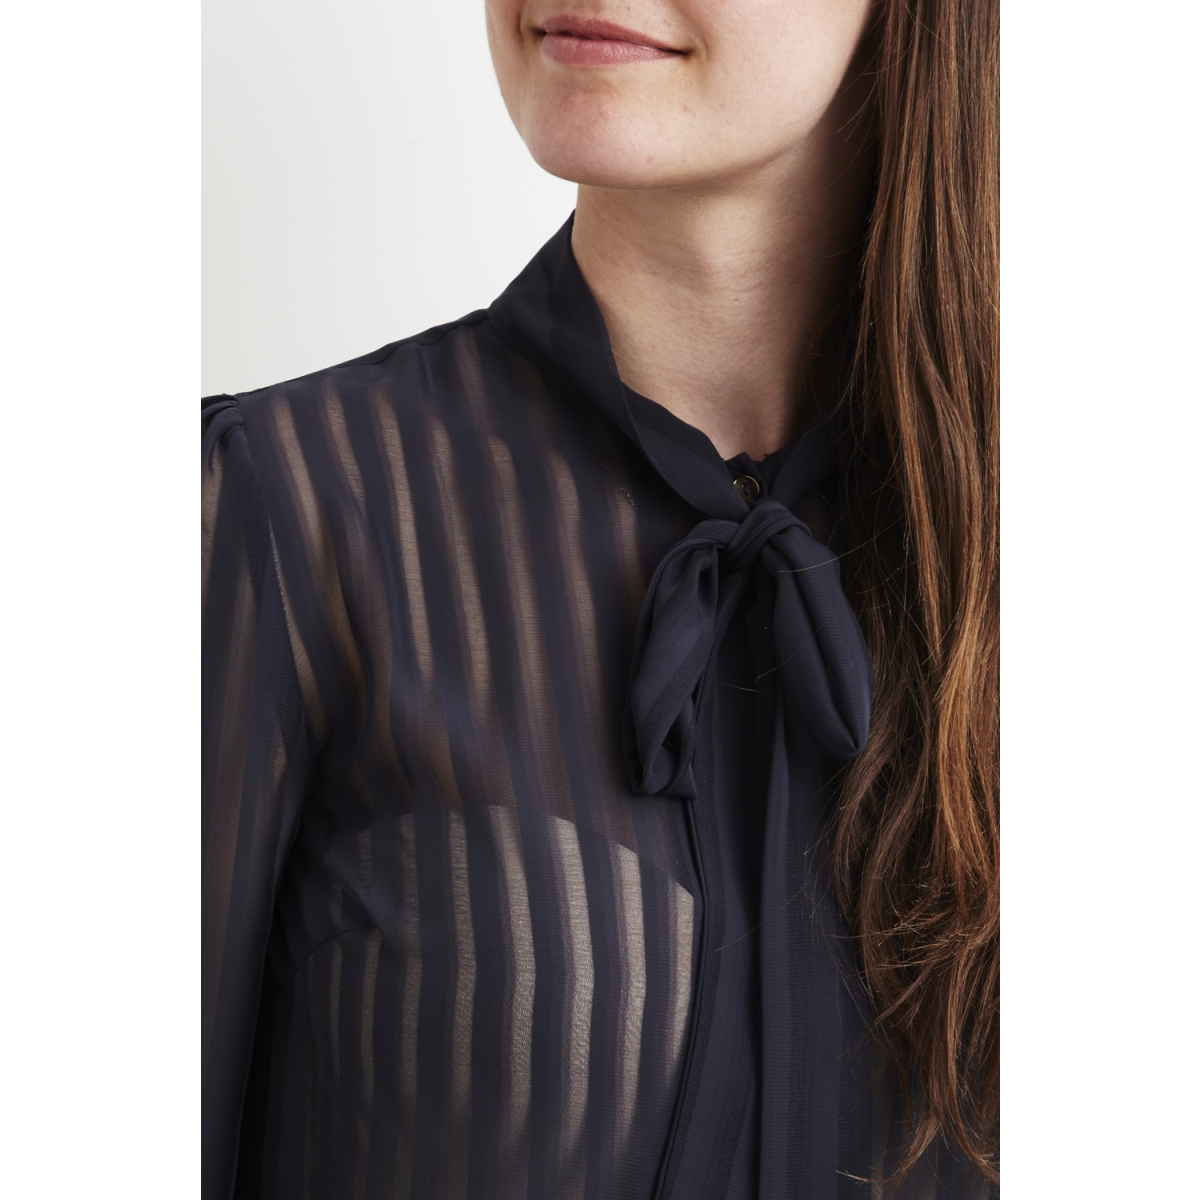 viaddie l/s bow shirt 14042445 vila blouse dark navy